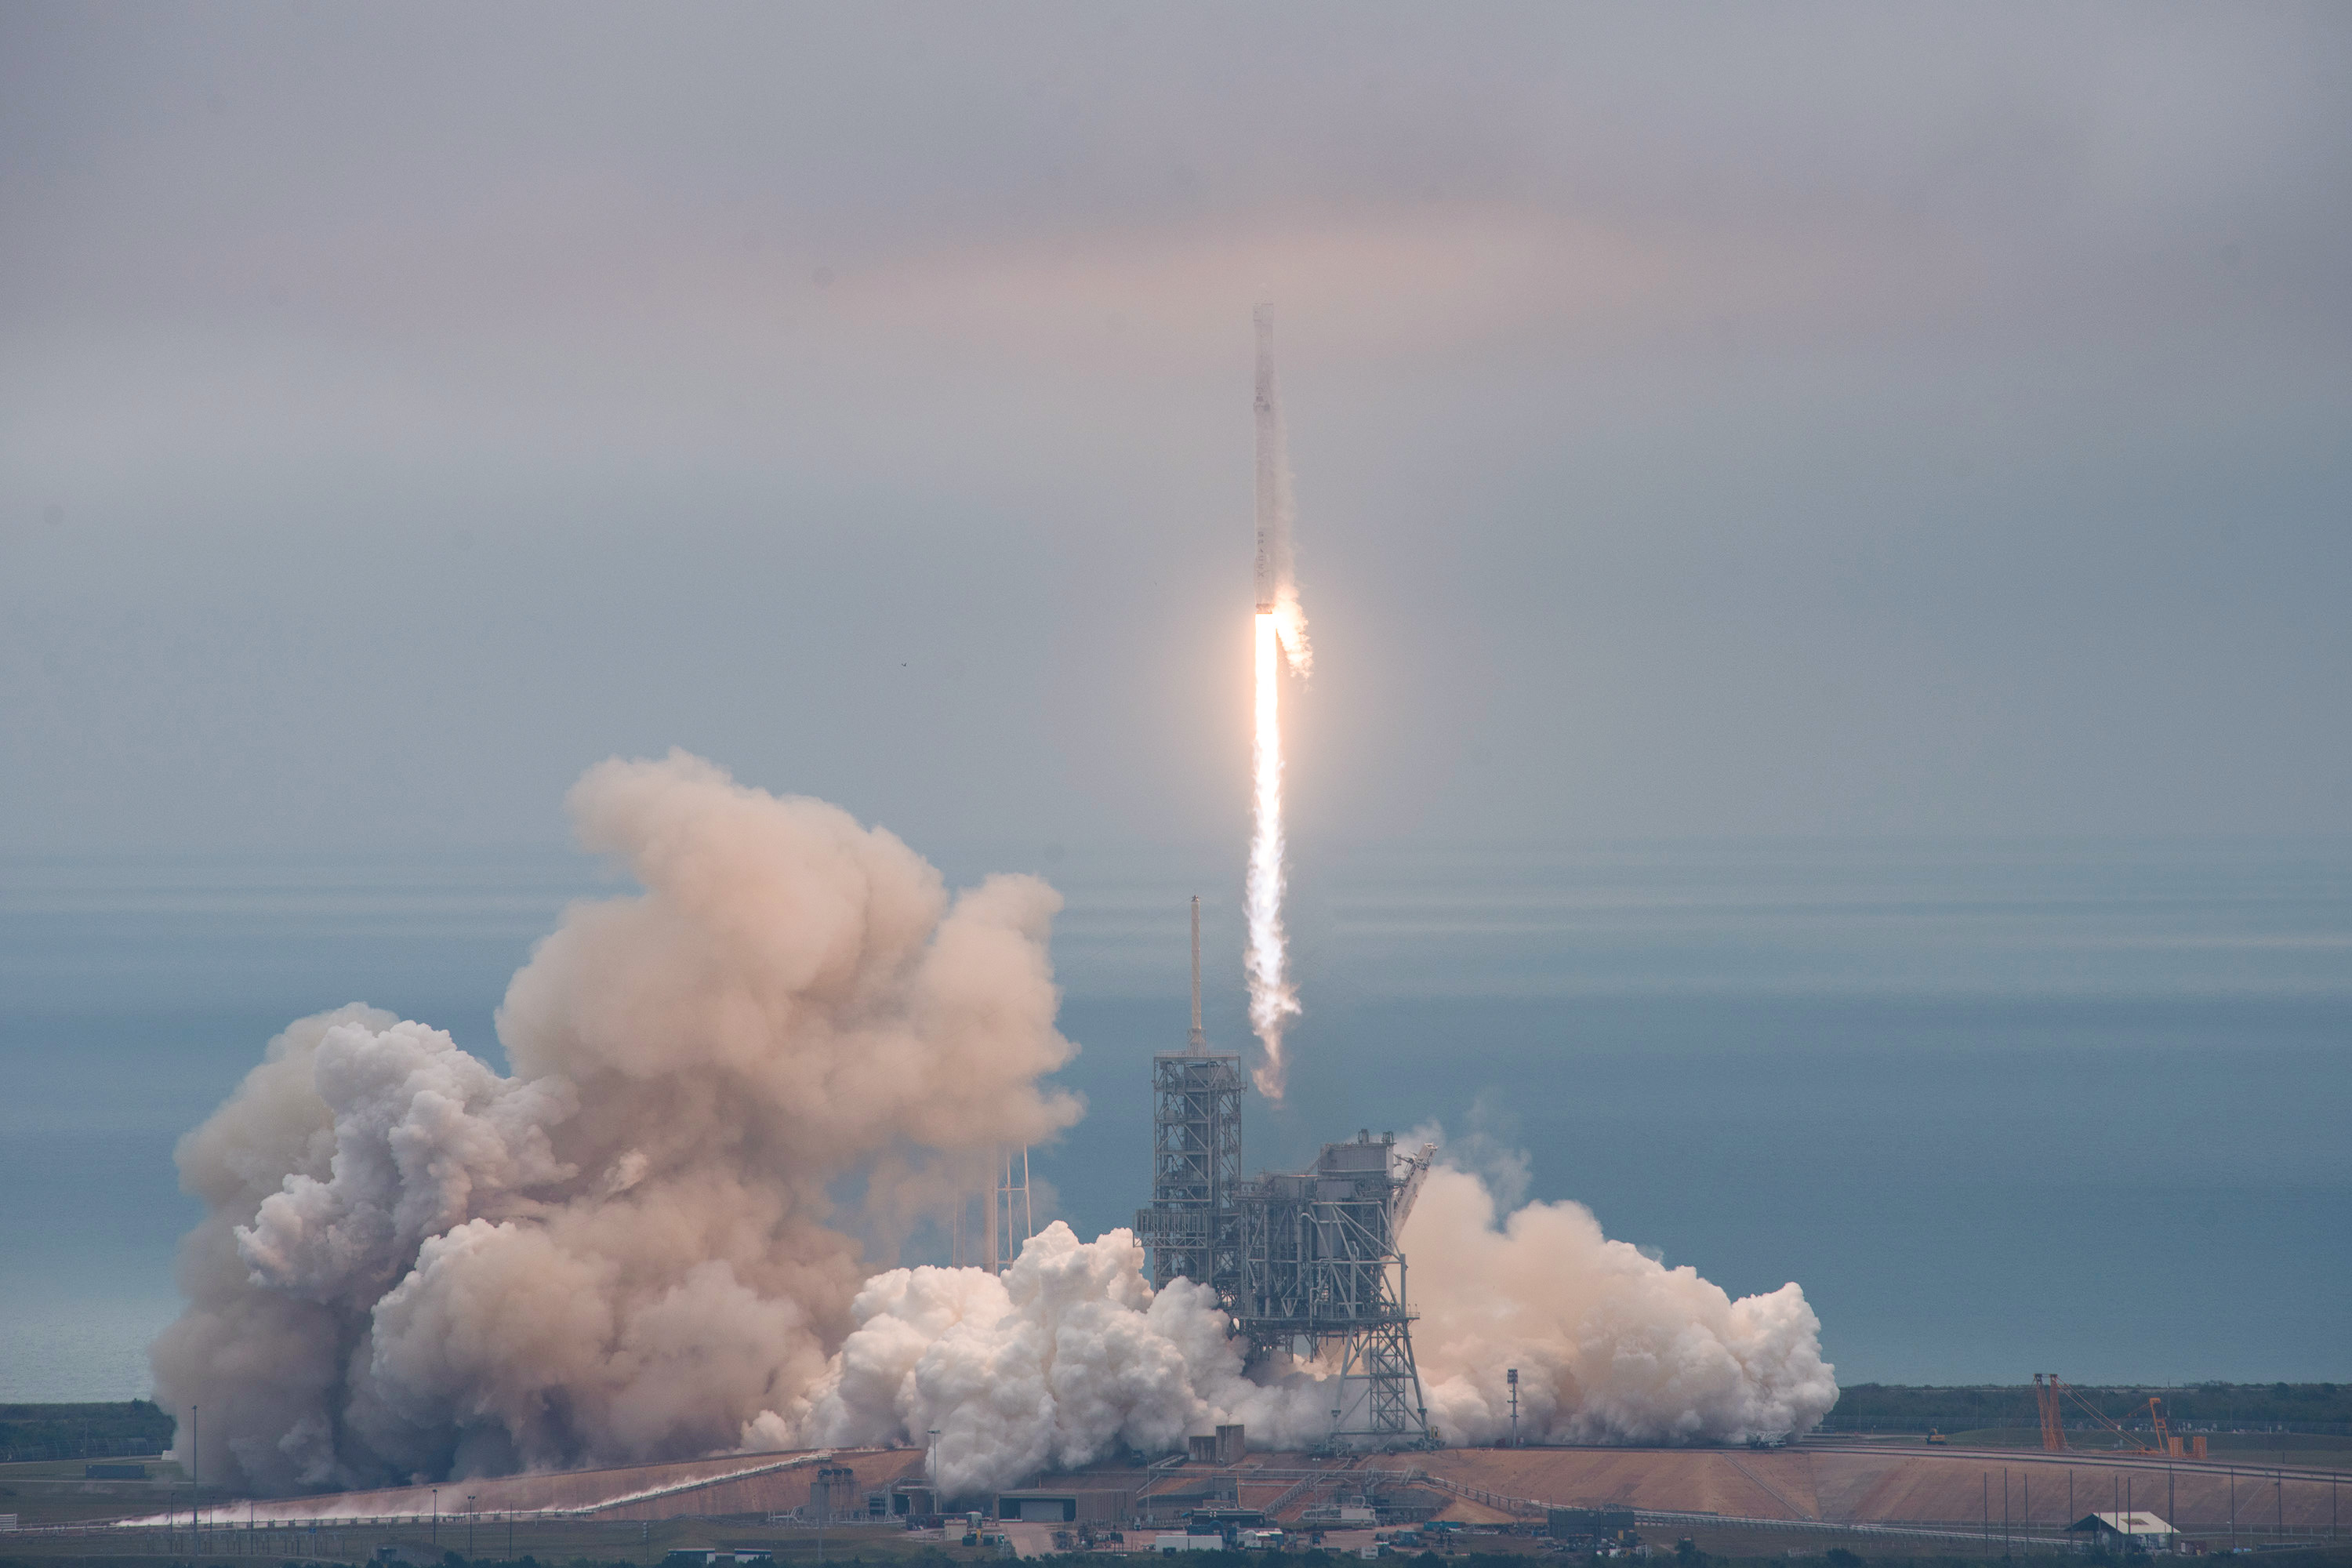 Falcon 9 lifts off on Debut Mission from Kennedy Space